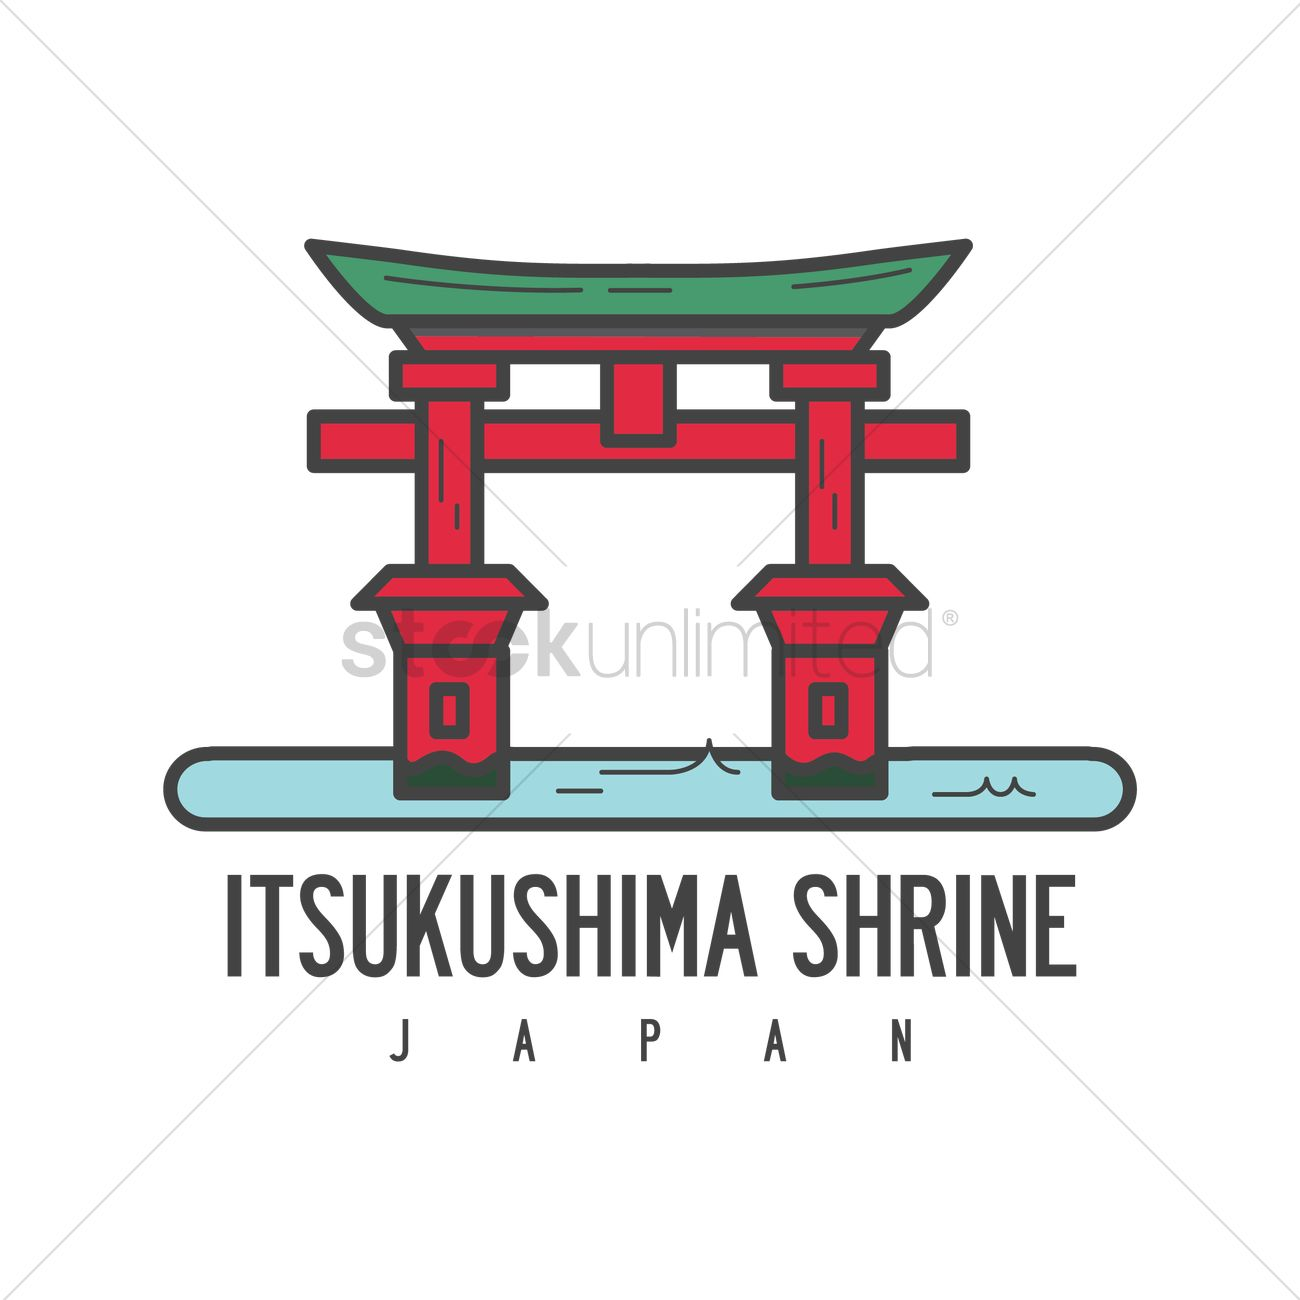 Itsukushima shrine Vector Image.